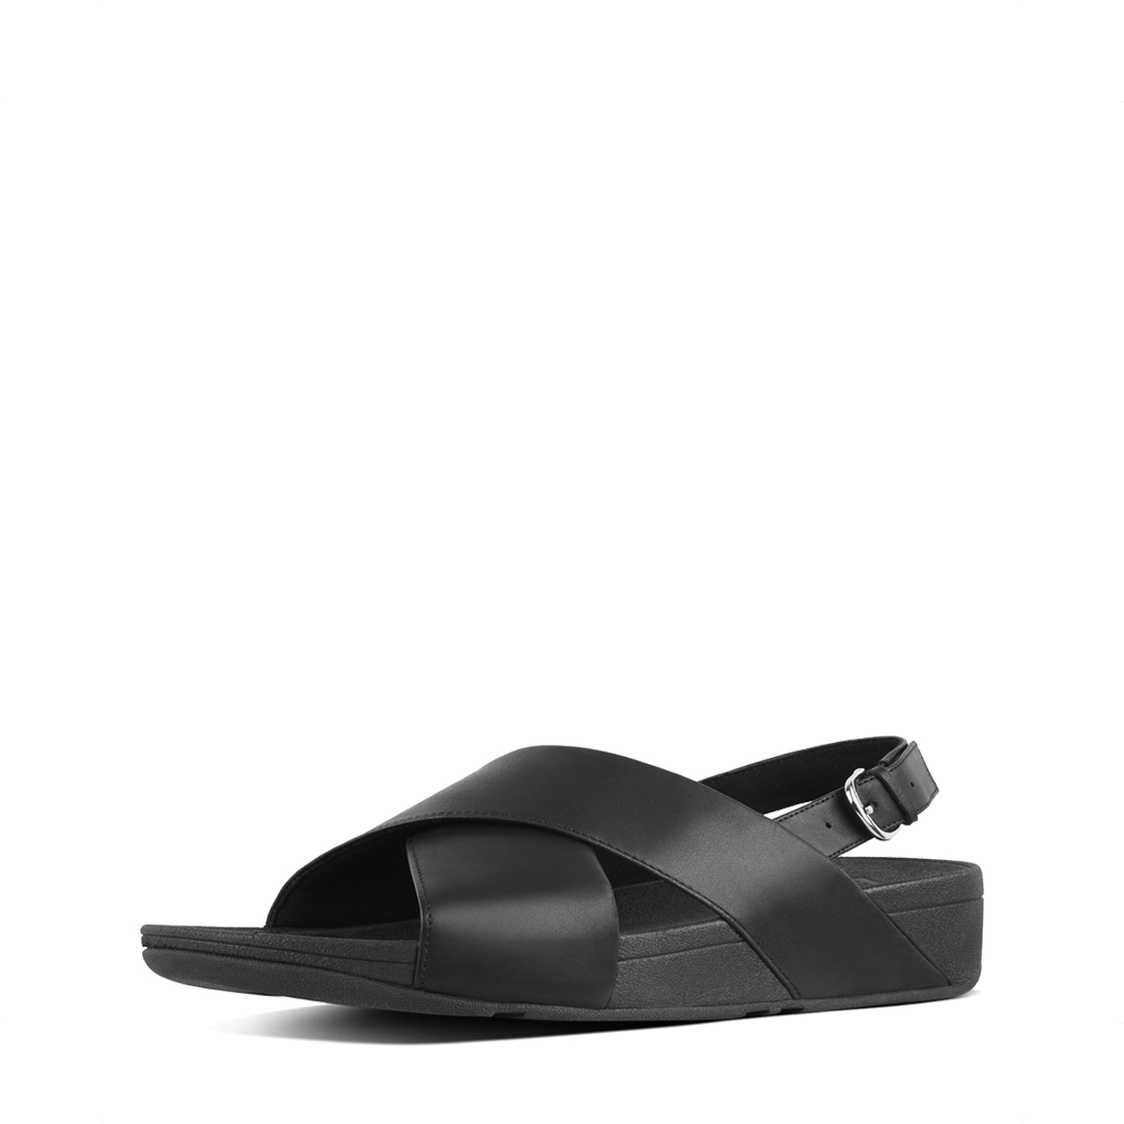 Fitflop Lulu Leather Cross Back-Strap Sandals - Leather Black